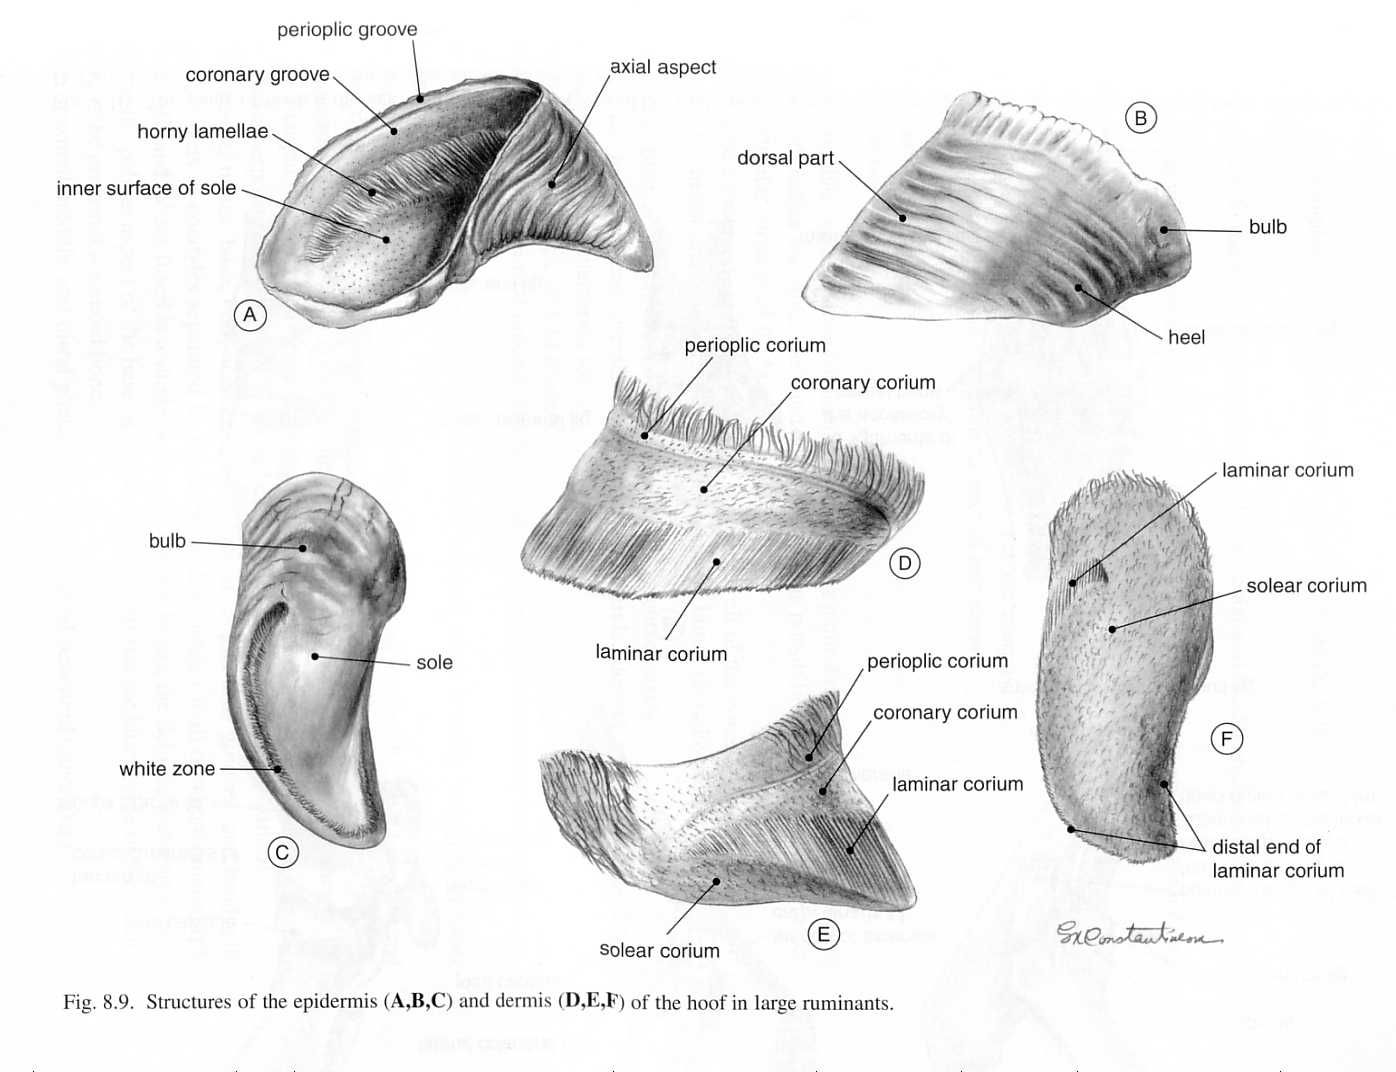 Ox Hoof Structures Similar To Goat Caprine Structures